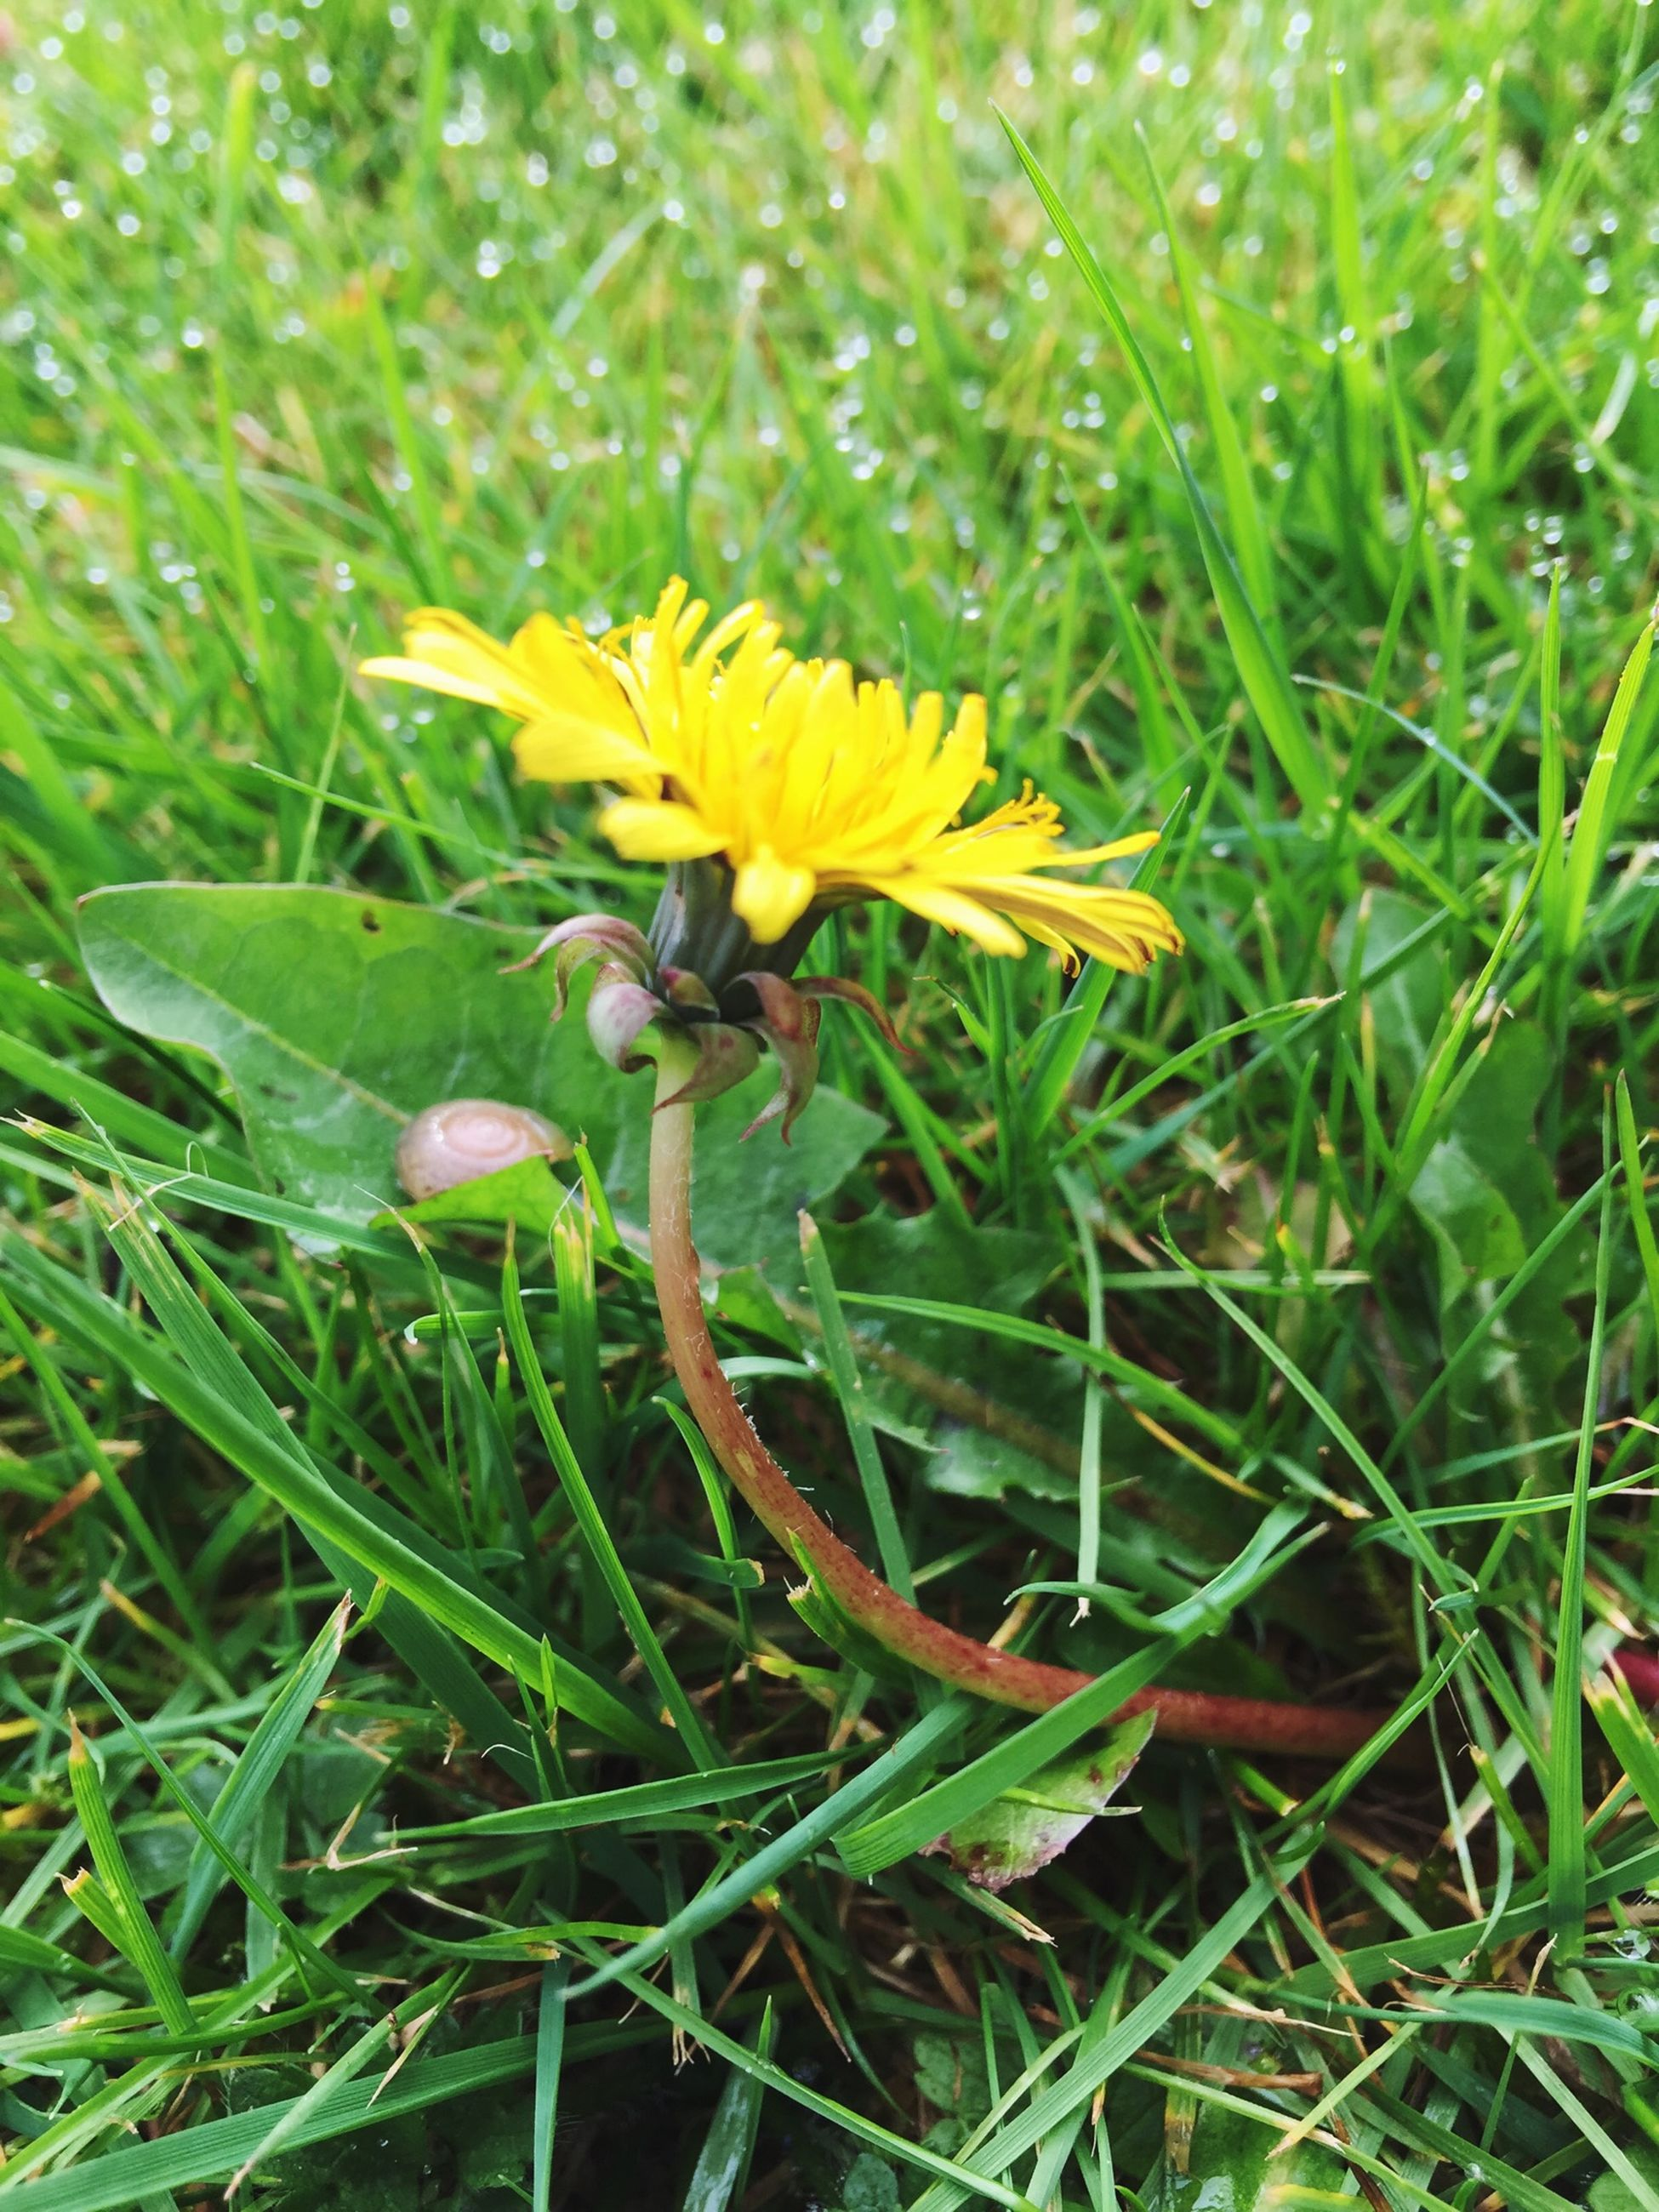 flower, freshness, fragility, yellow, growth, petal, flower head, plant, beauty in nature, field, blooming, nature, green color, single flower, grass, close-up, focus on foreground, insect, in bloom, high angle view